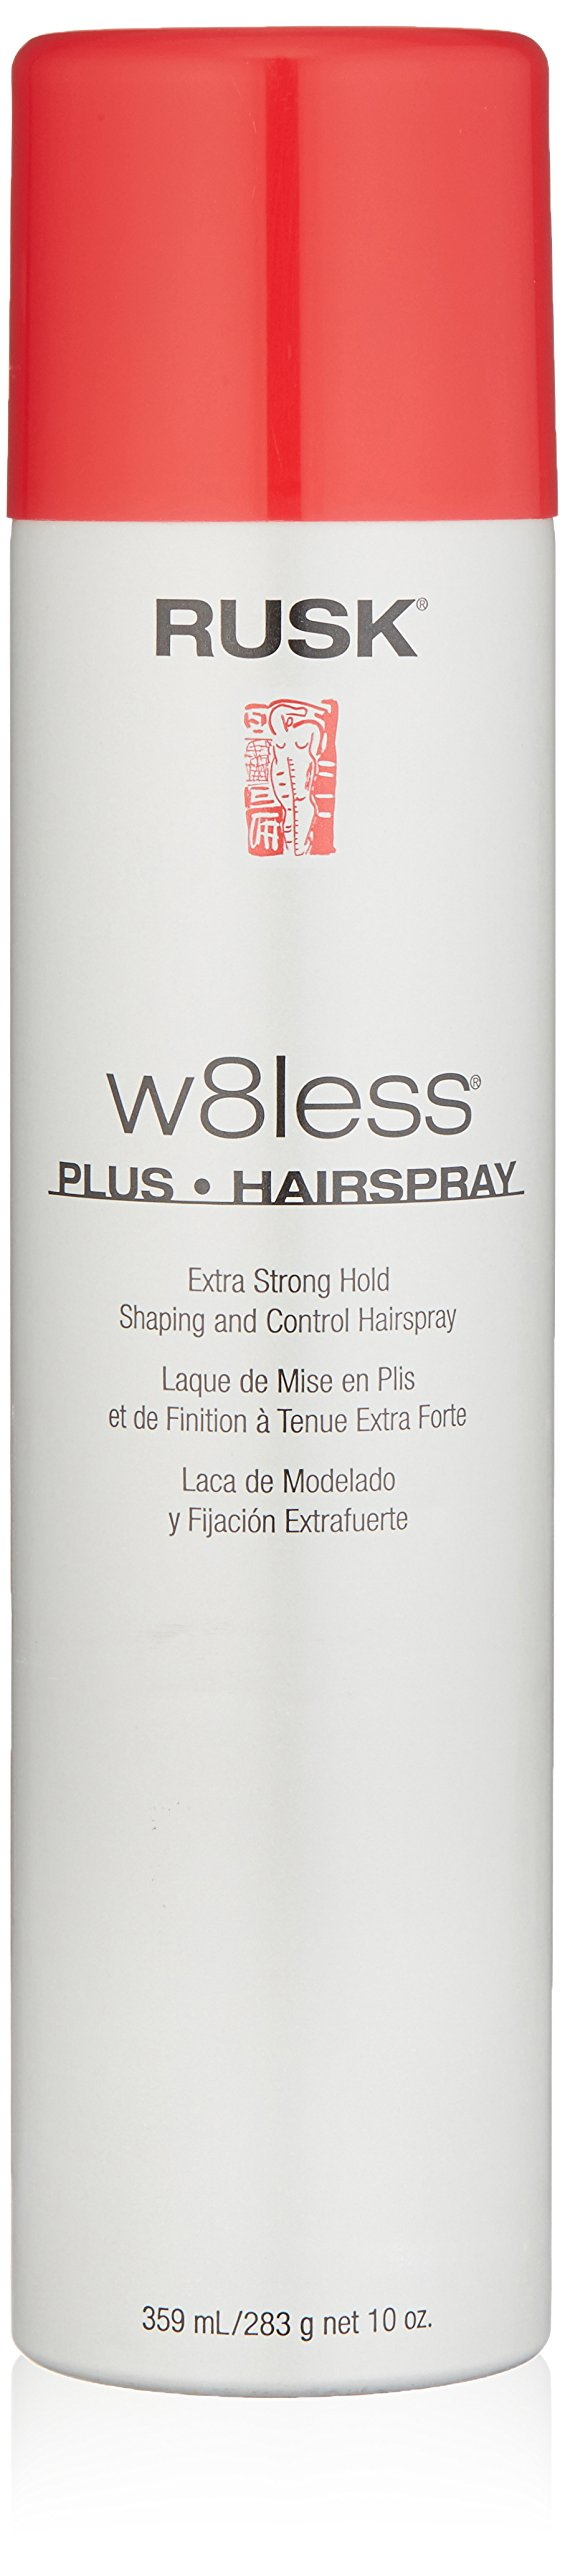 RUSK Designer Collection W8less Plus Extra Strong Hairspray, 10 oz. by RUSK